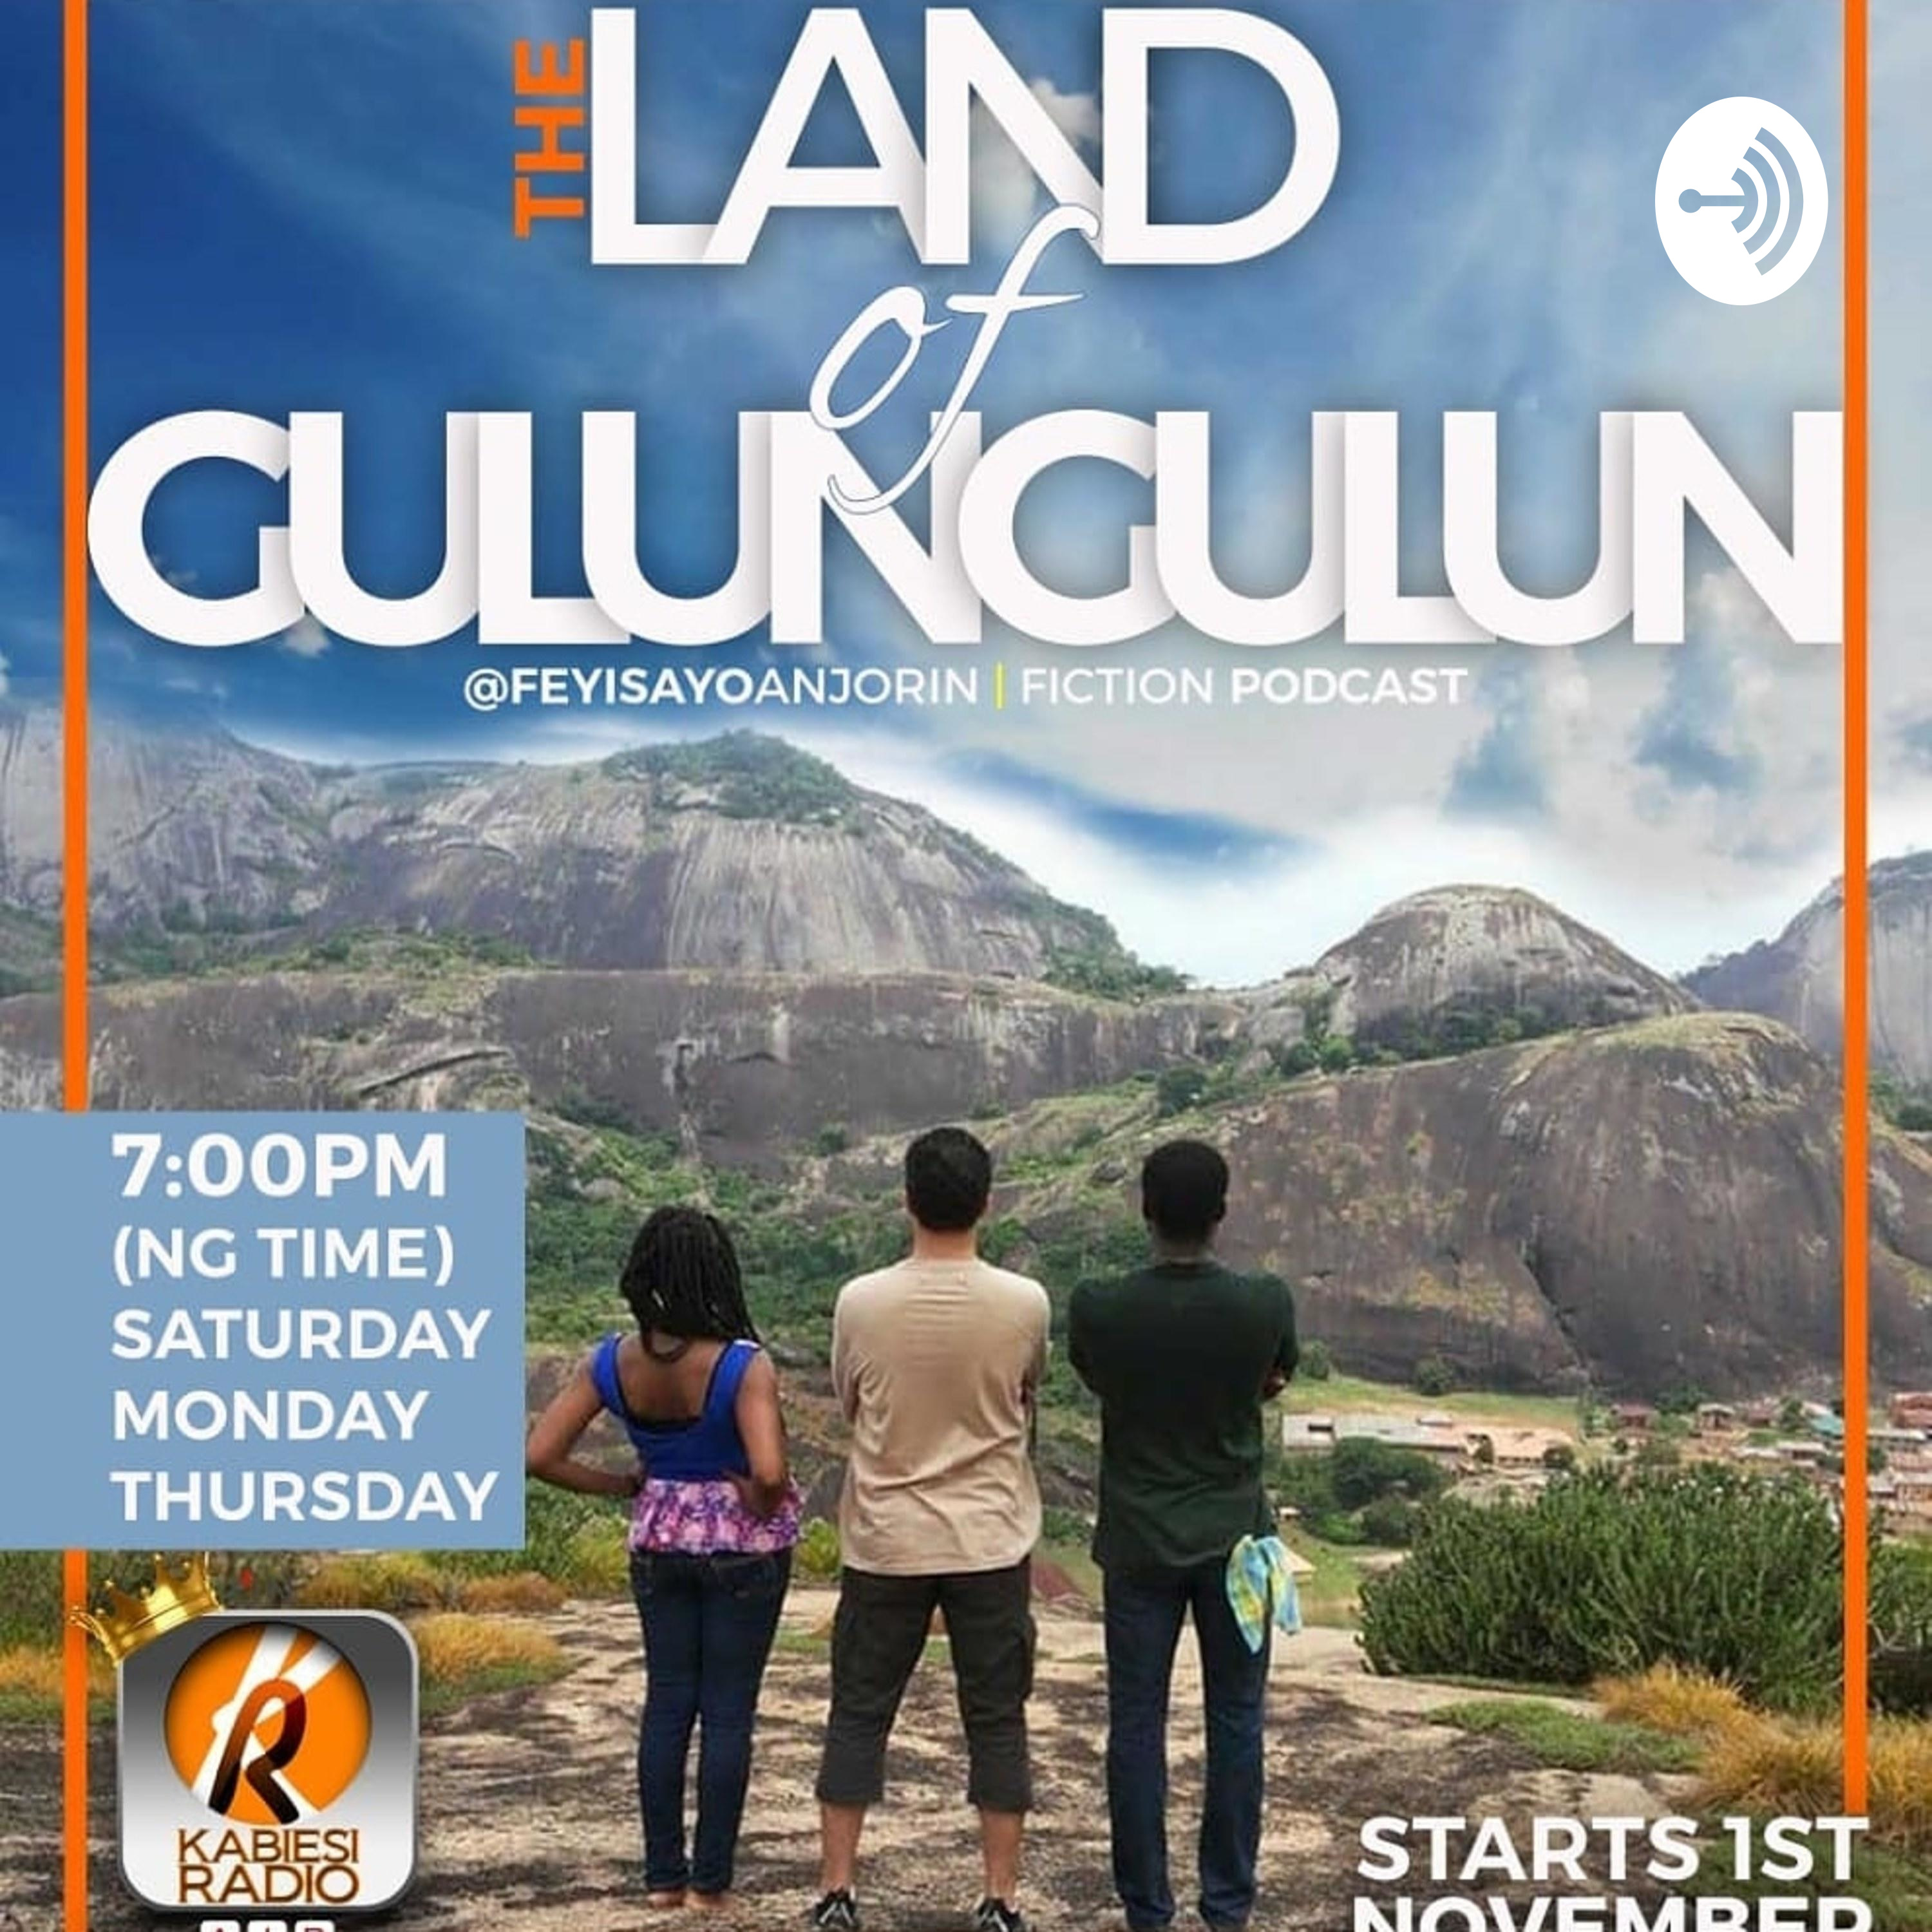 """The Land of Gulungulun"" Podcast"